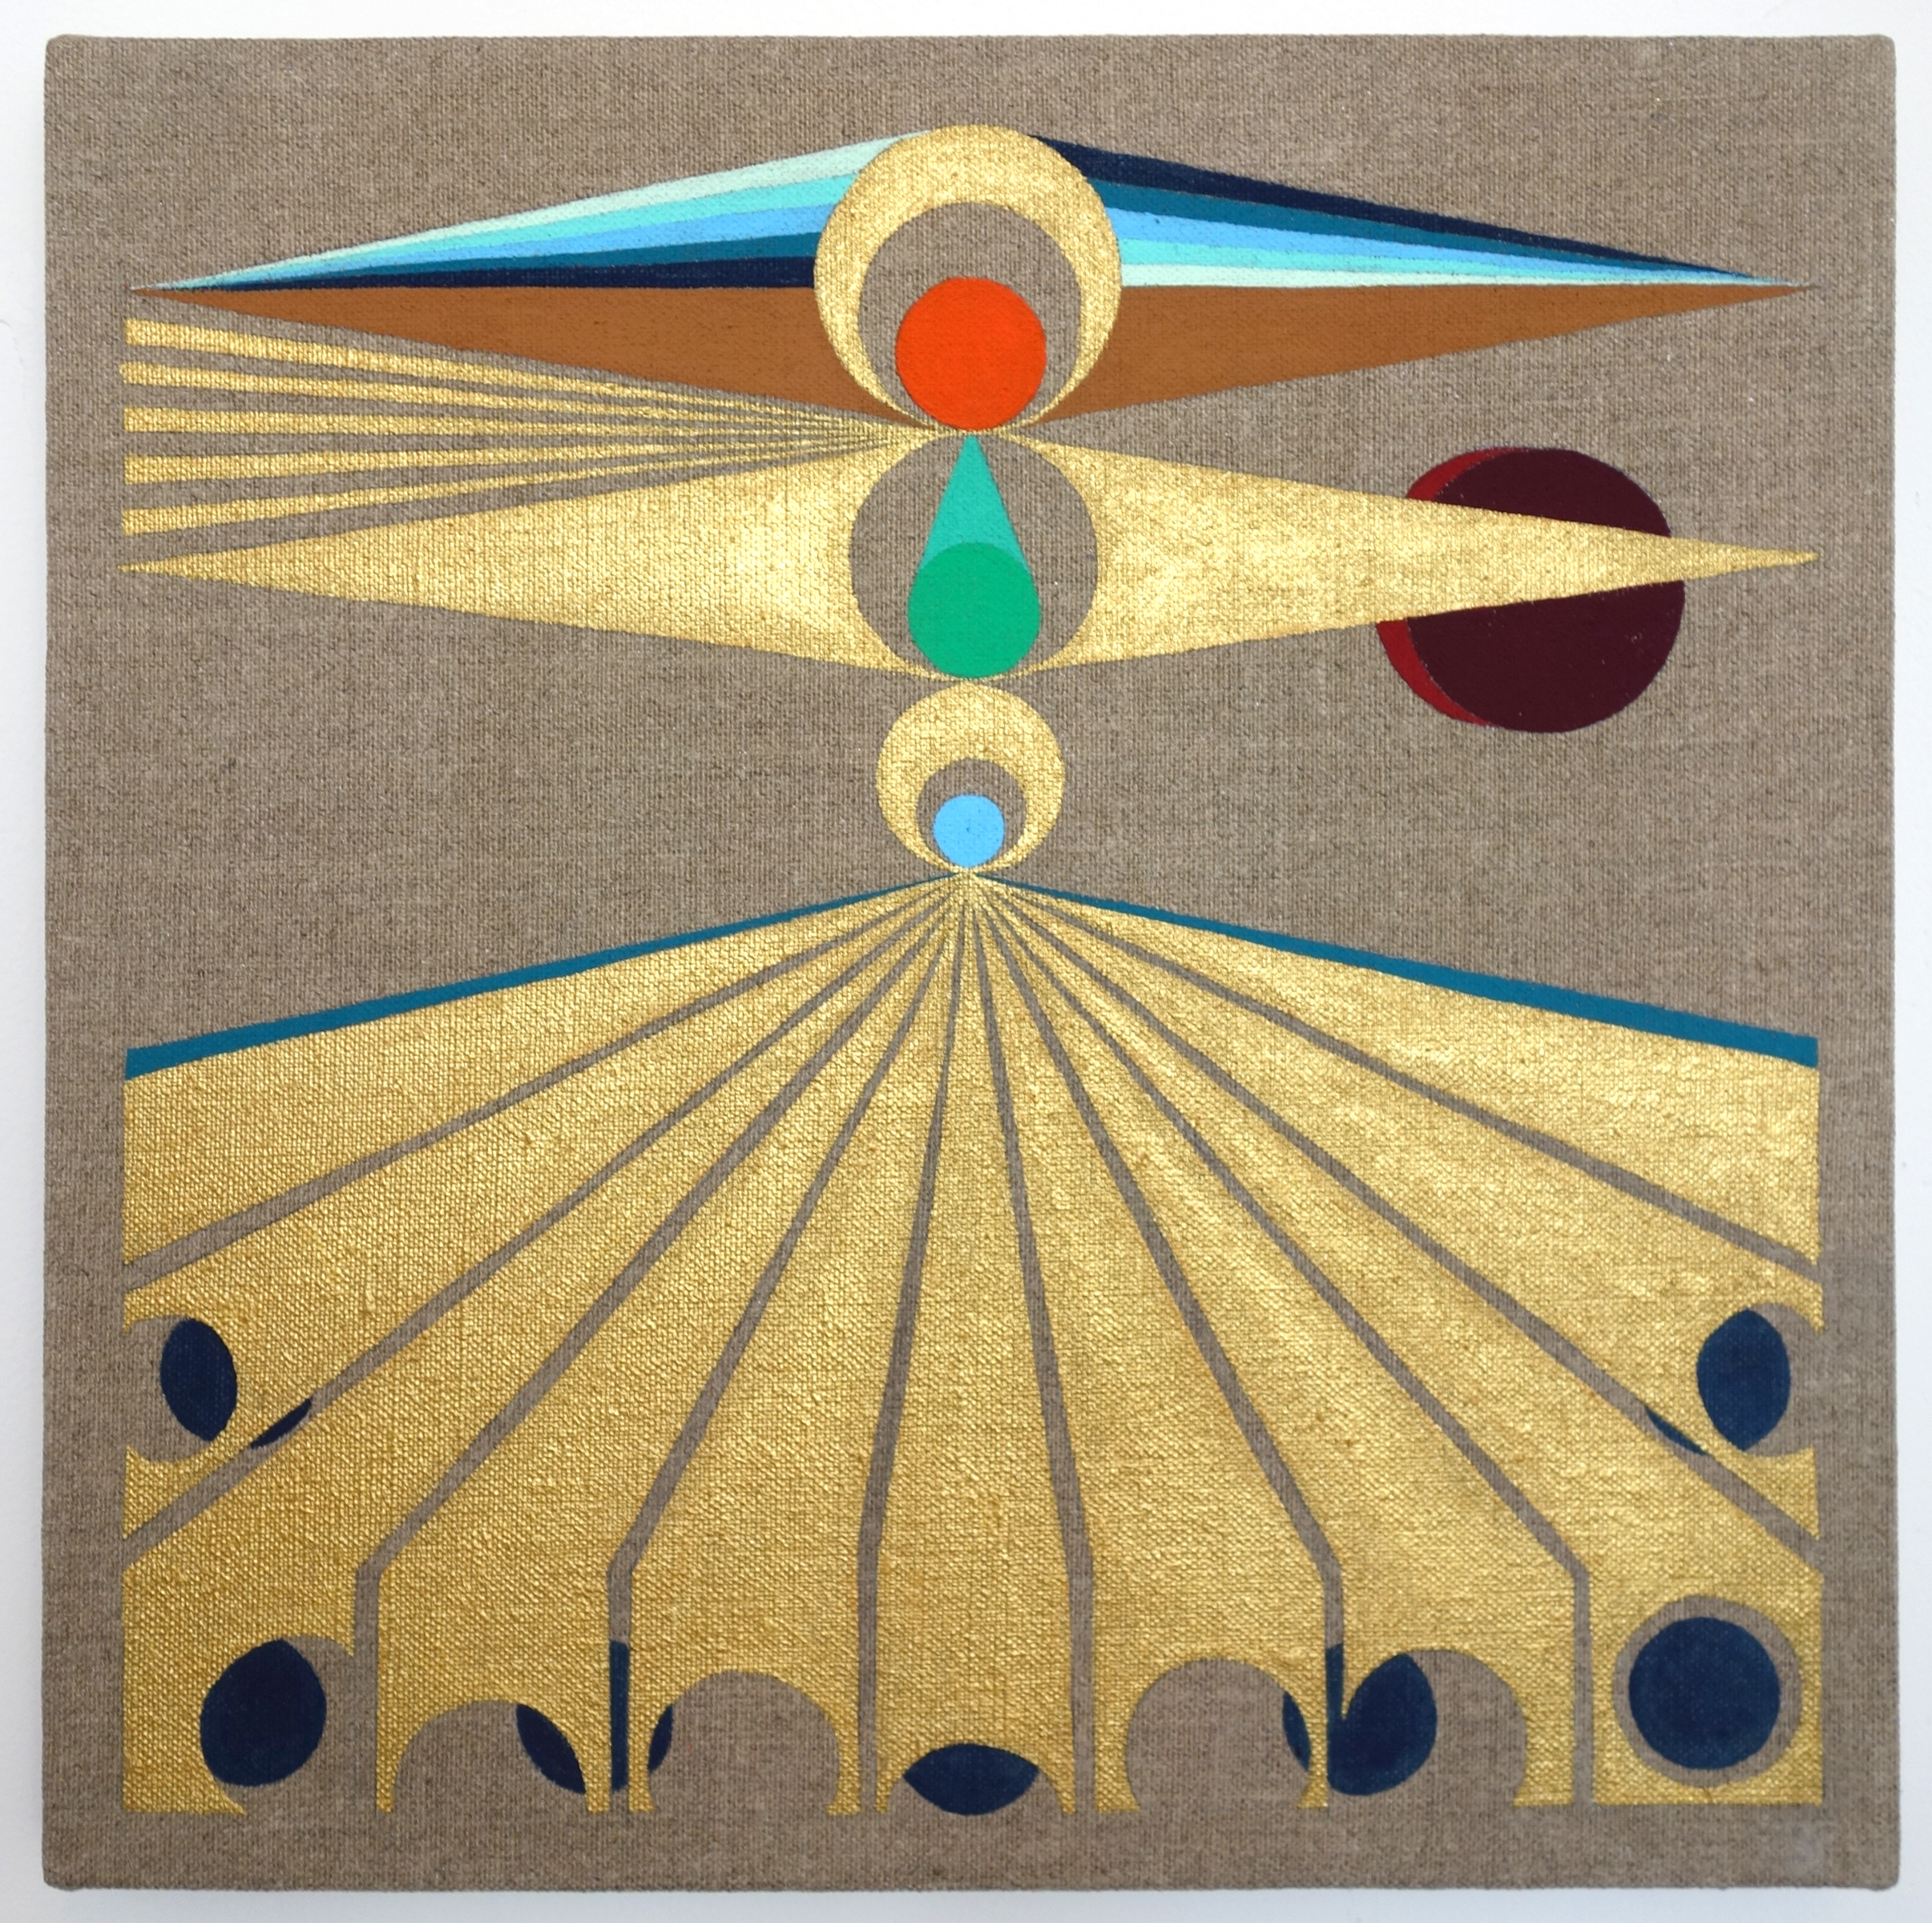 "Eamon Ore-Giron Infinite Regress IV, 2015, Flashe on linen, 12"" x 12"""